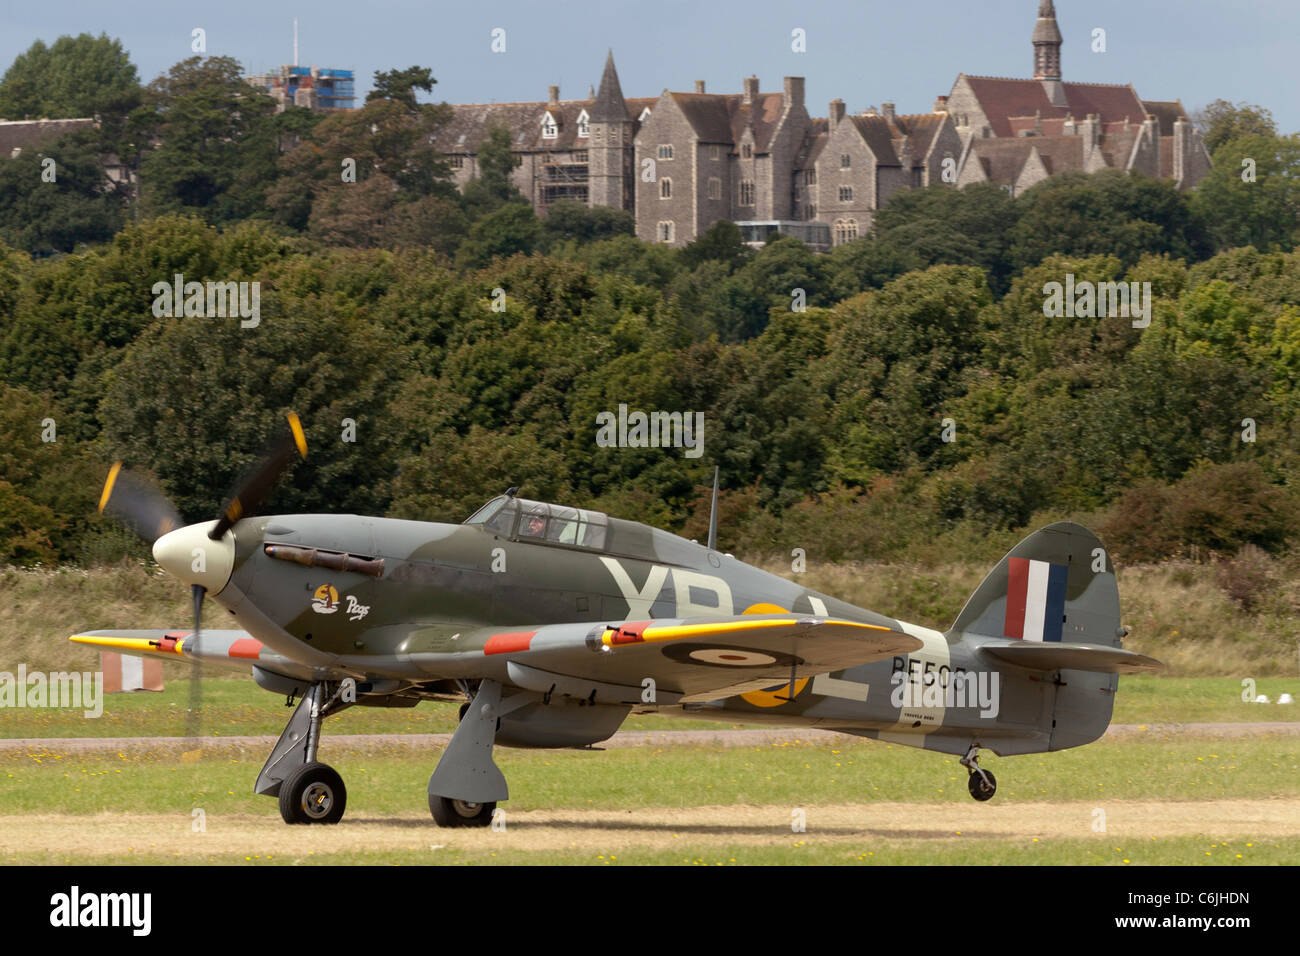 A Hawker Hurricane fighter bomber at Shoreham airfield in 2011 - Stock Image